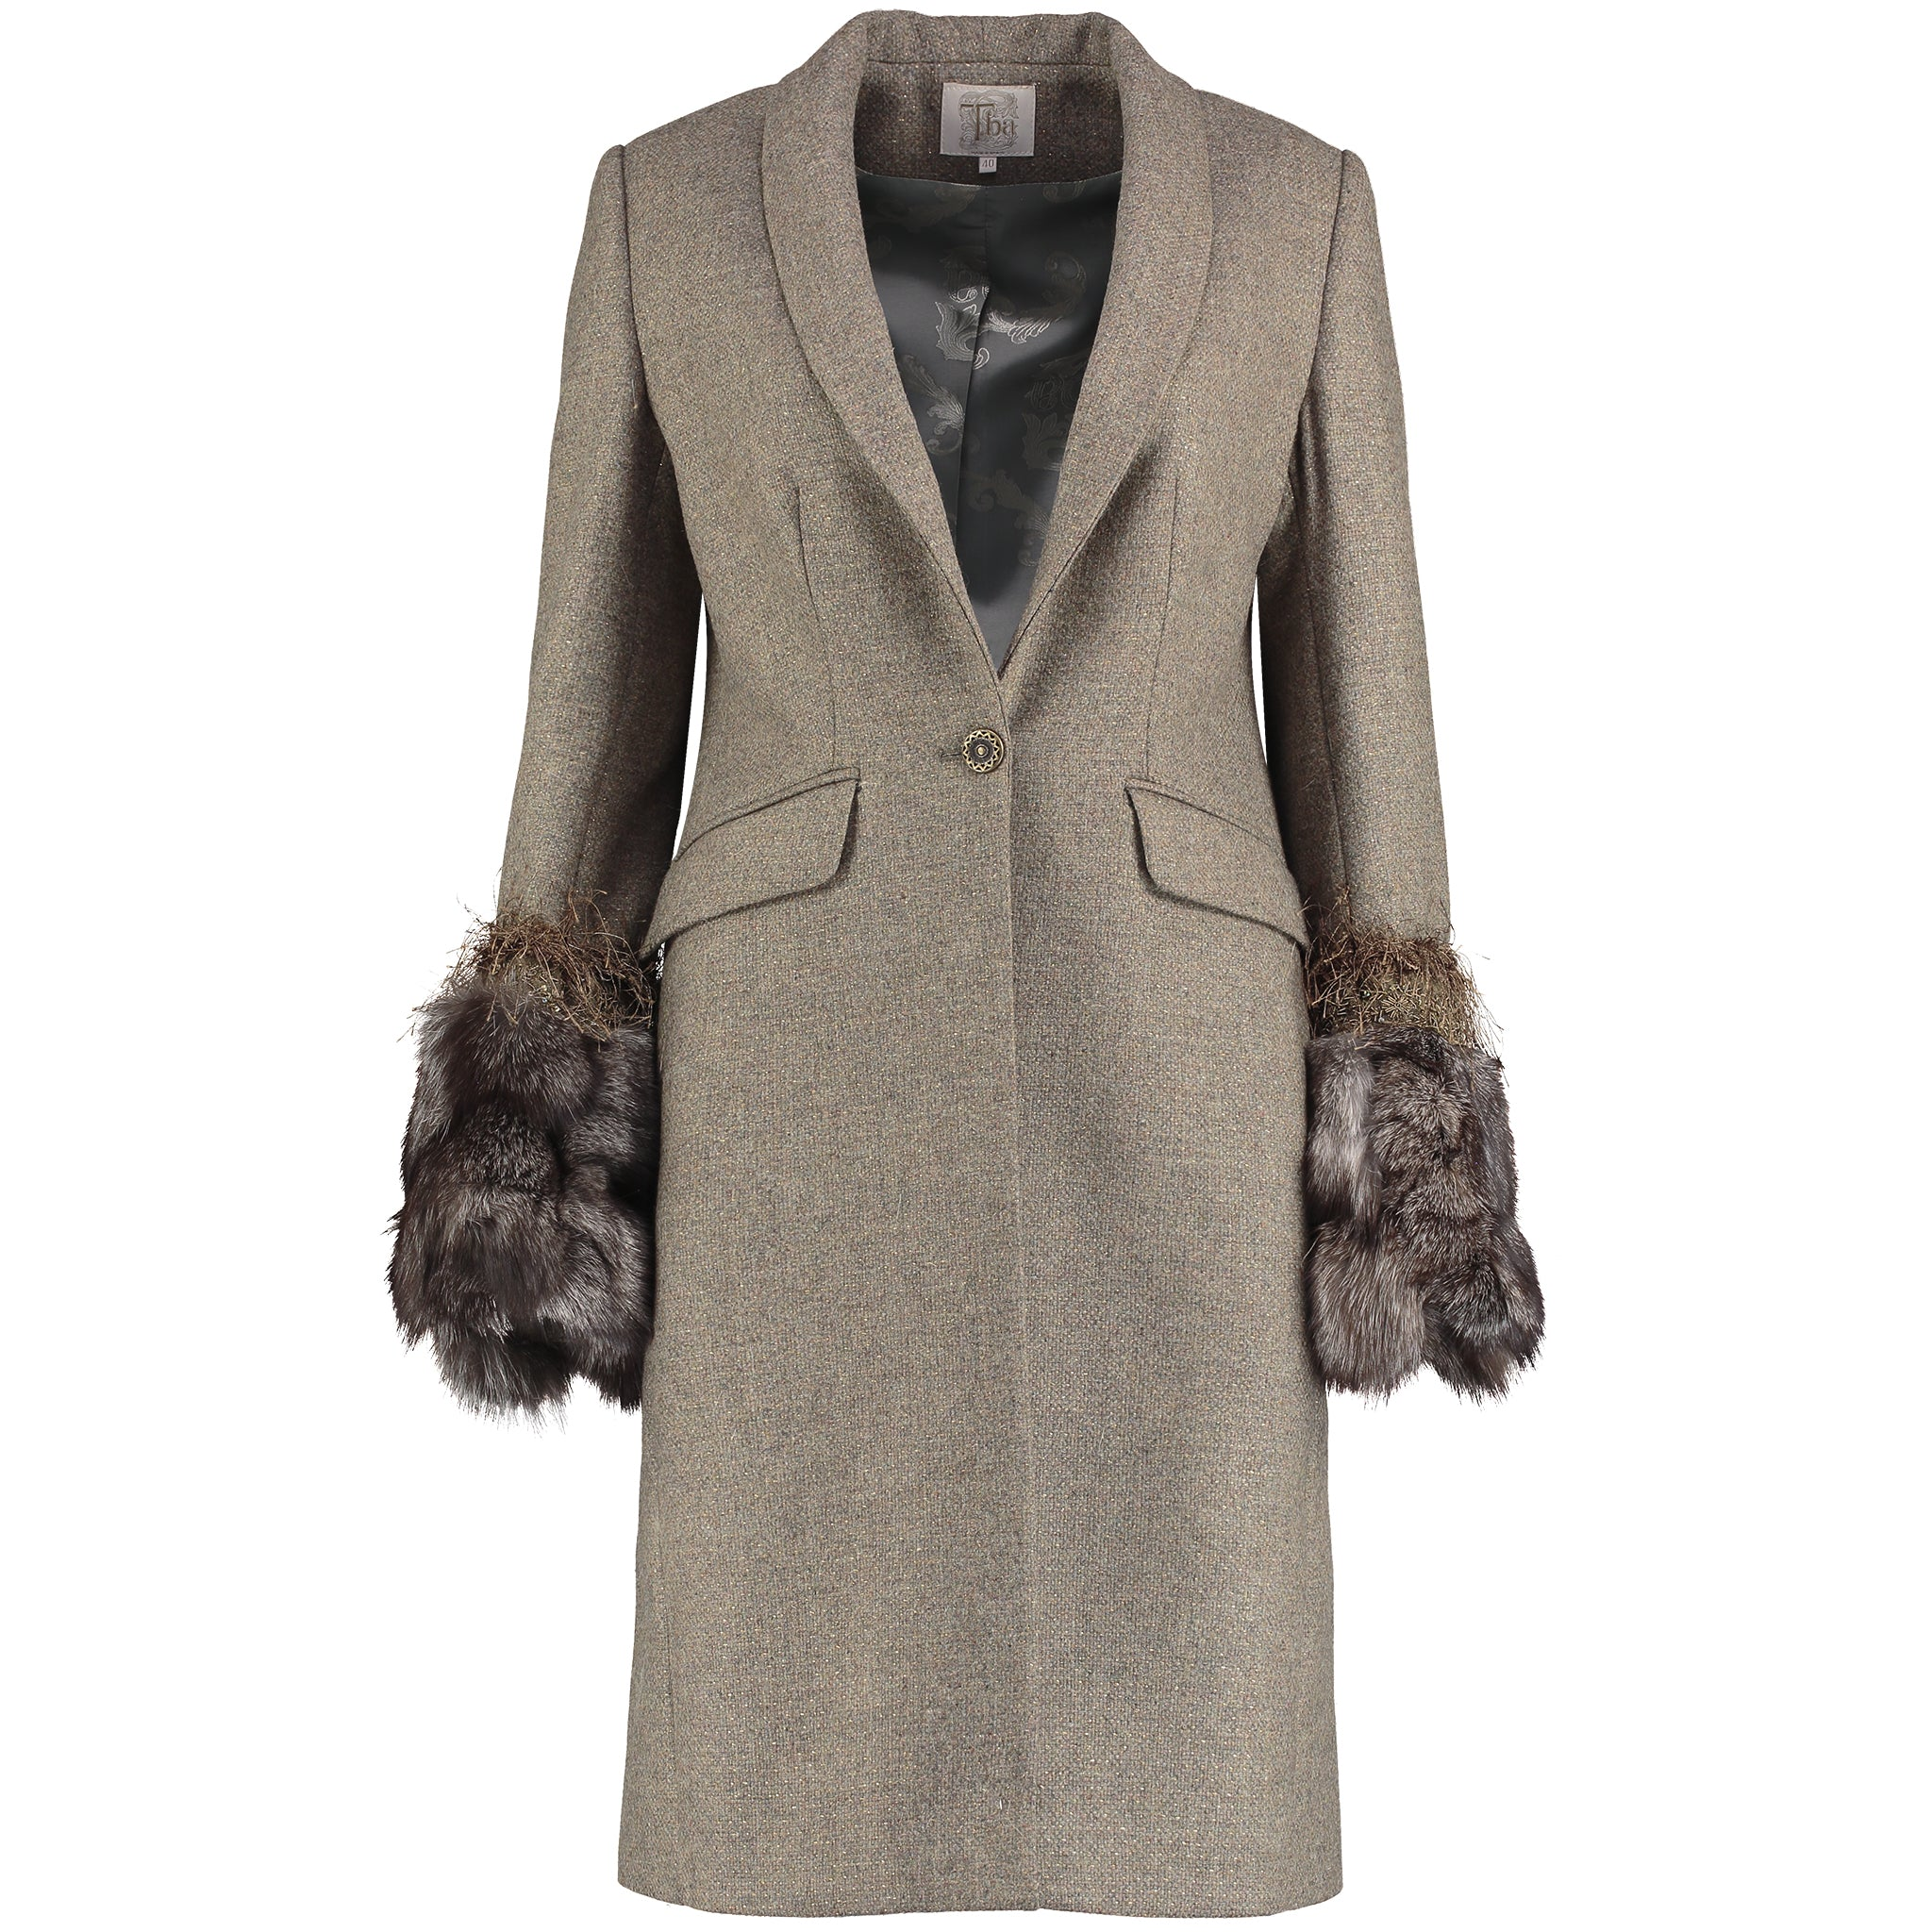 T.Ba Dasha Knee Length Tweed Coat for Ladies in Fox Tweed